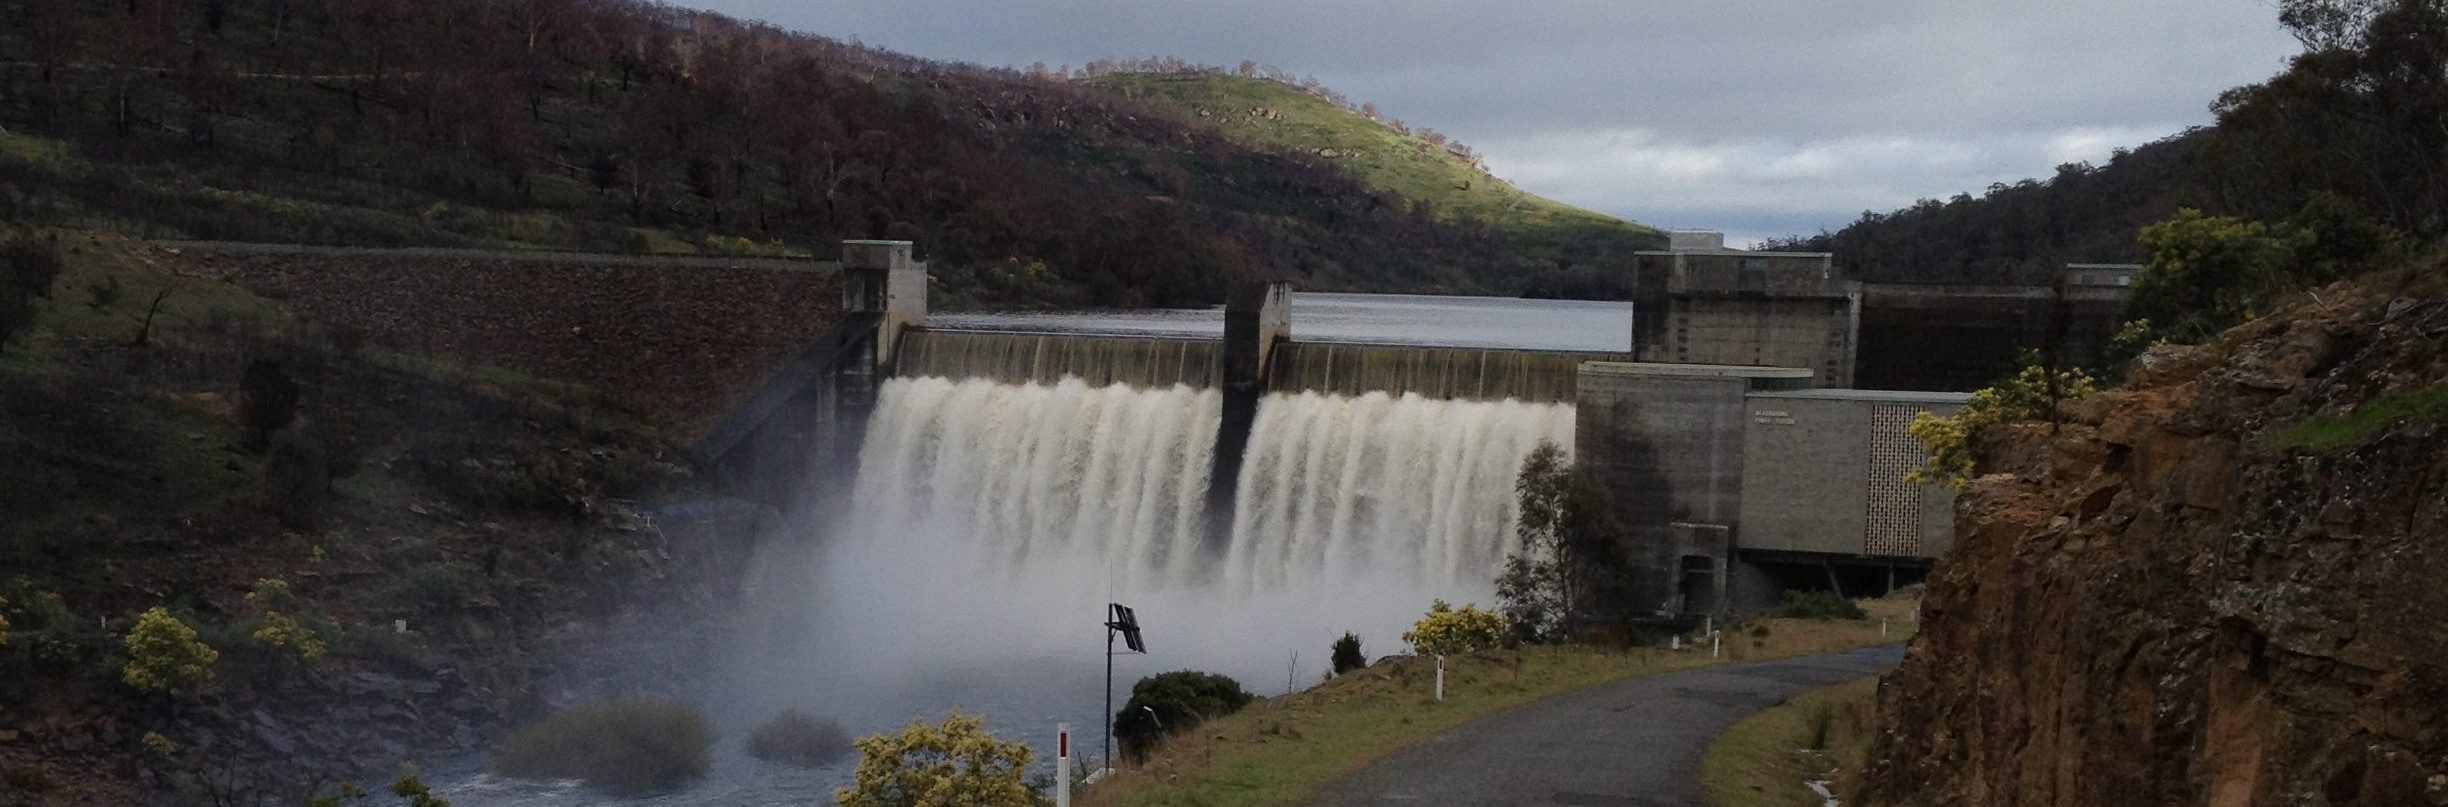 Meadowbank Dam on full flow